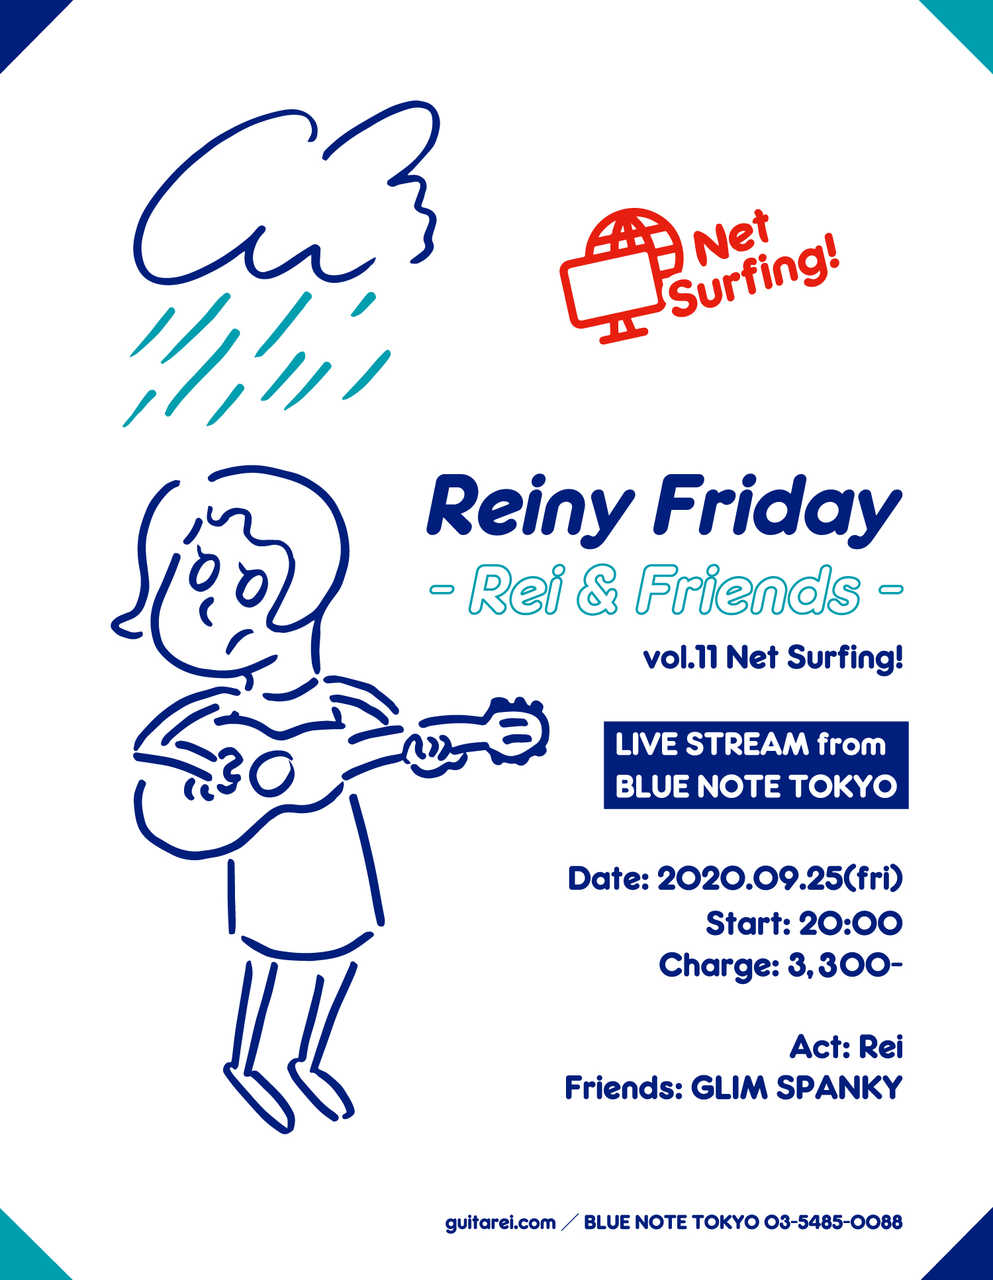 オンラインライブ『Reiny Friday -Rei & Friends- Vol.11 Net Surfing!』